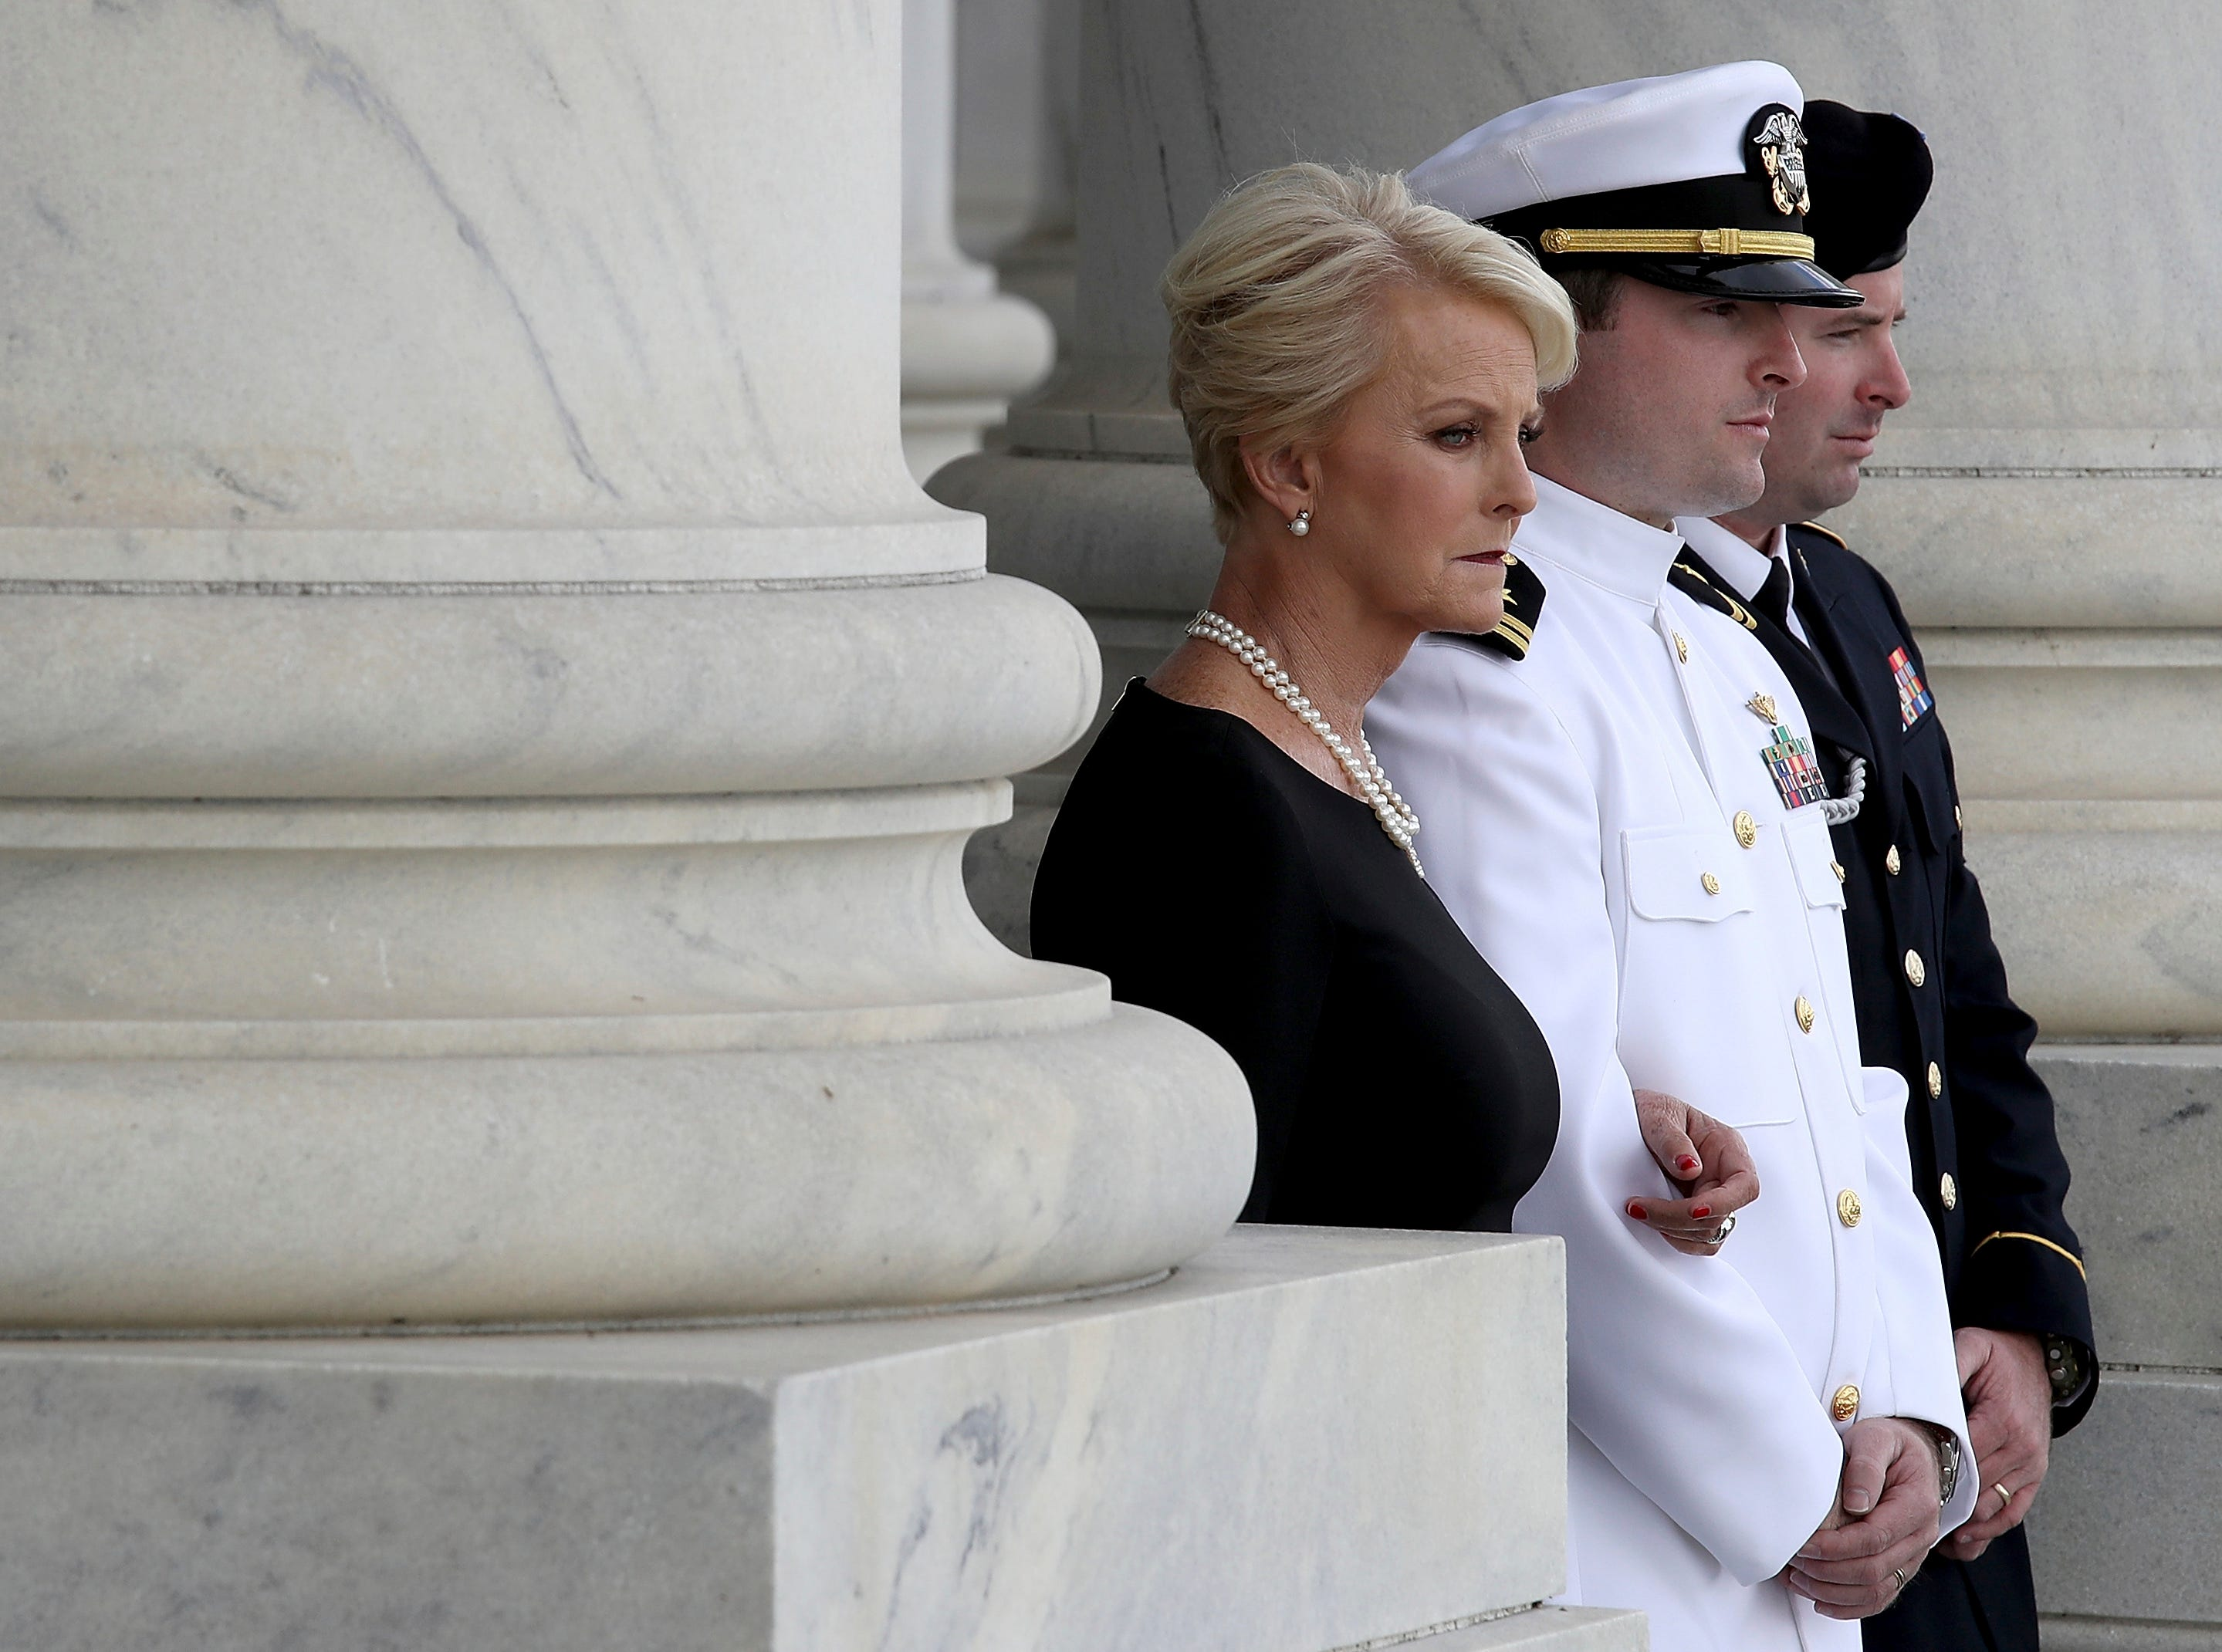 Cindy McCain, Jack McCain, and James McCain watch as a military honor guard team carries the casket of Sen. John McCain, R-Ariz., into the U.S. Capitol Aug. 31, 2018.